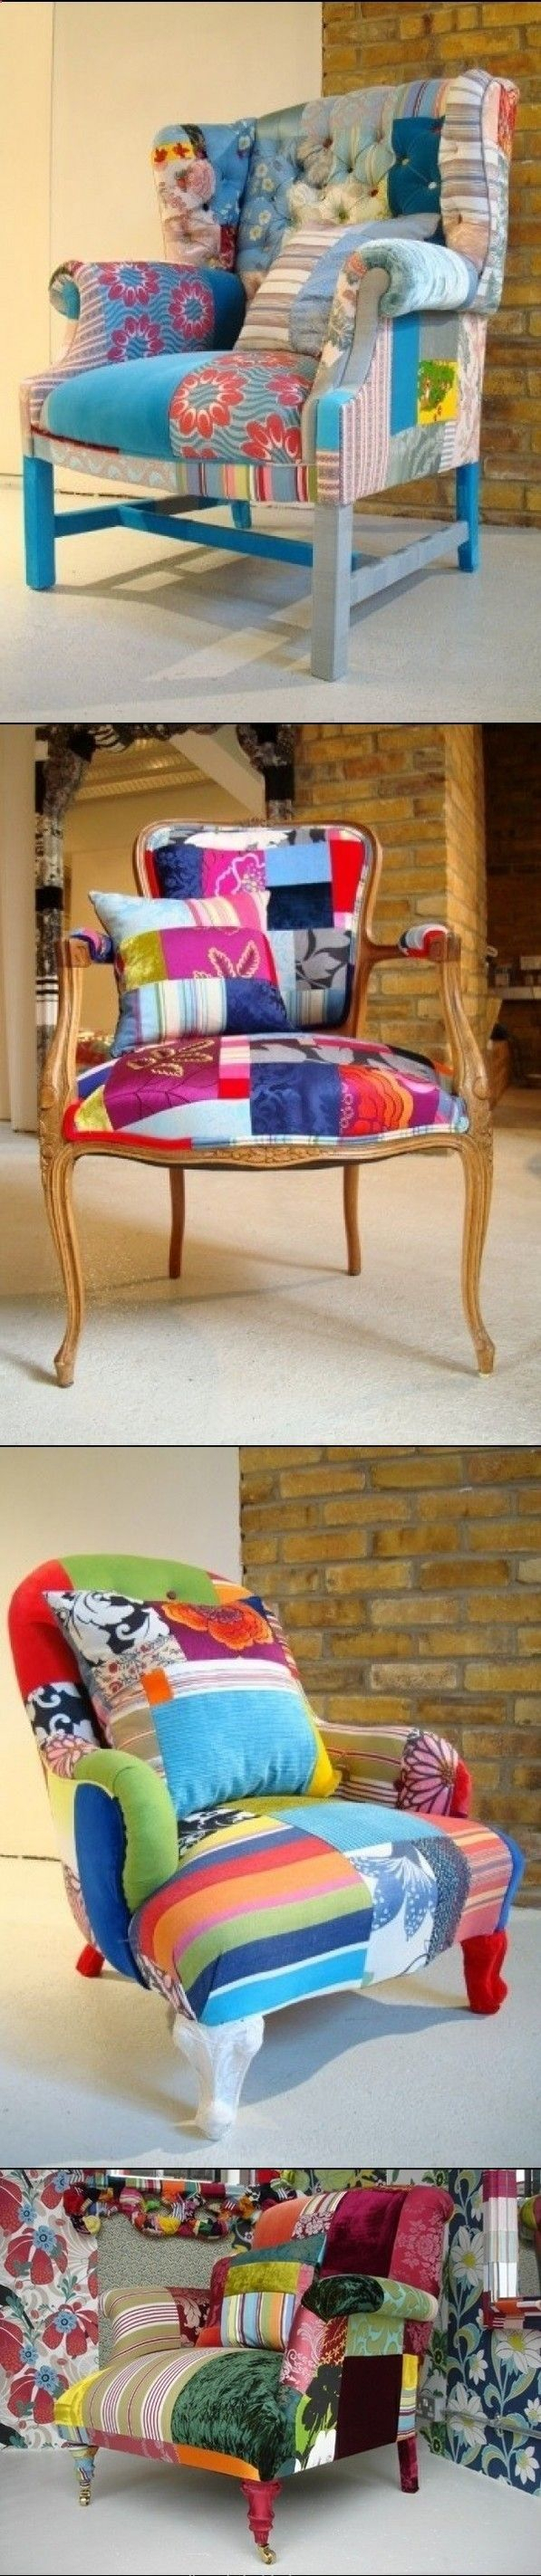 828 Best Chairs Images On Pinterest | Couches, Armchairs And Chairs Pertaining To Bailey Linen Flare Arm Wing Skirted Swivel Gliders (Image 1 of 20)